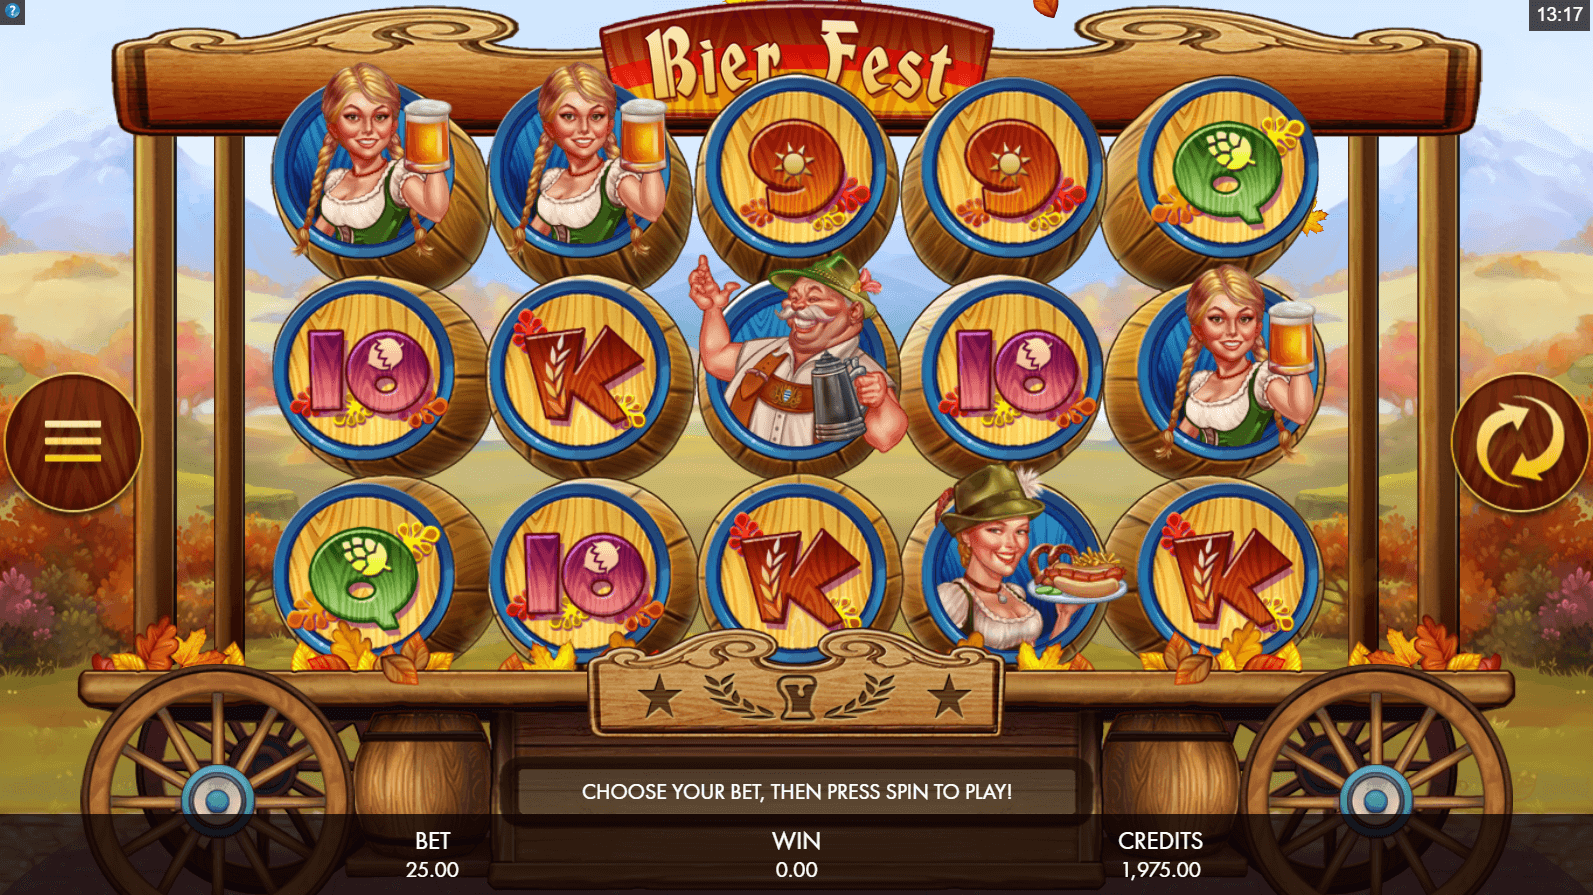 Play Bier Fest Slot Machine Free with No Download